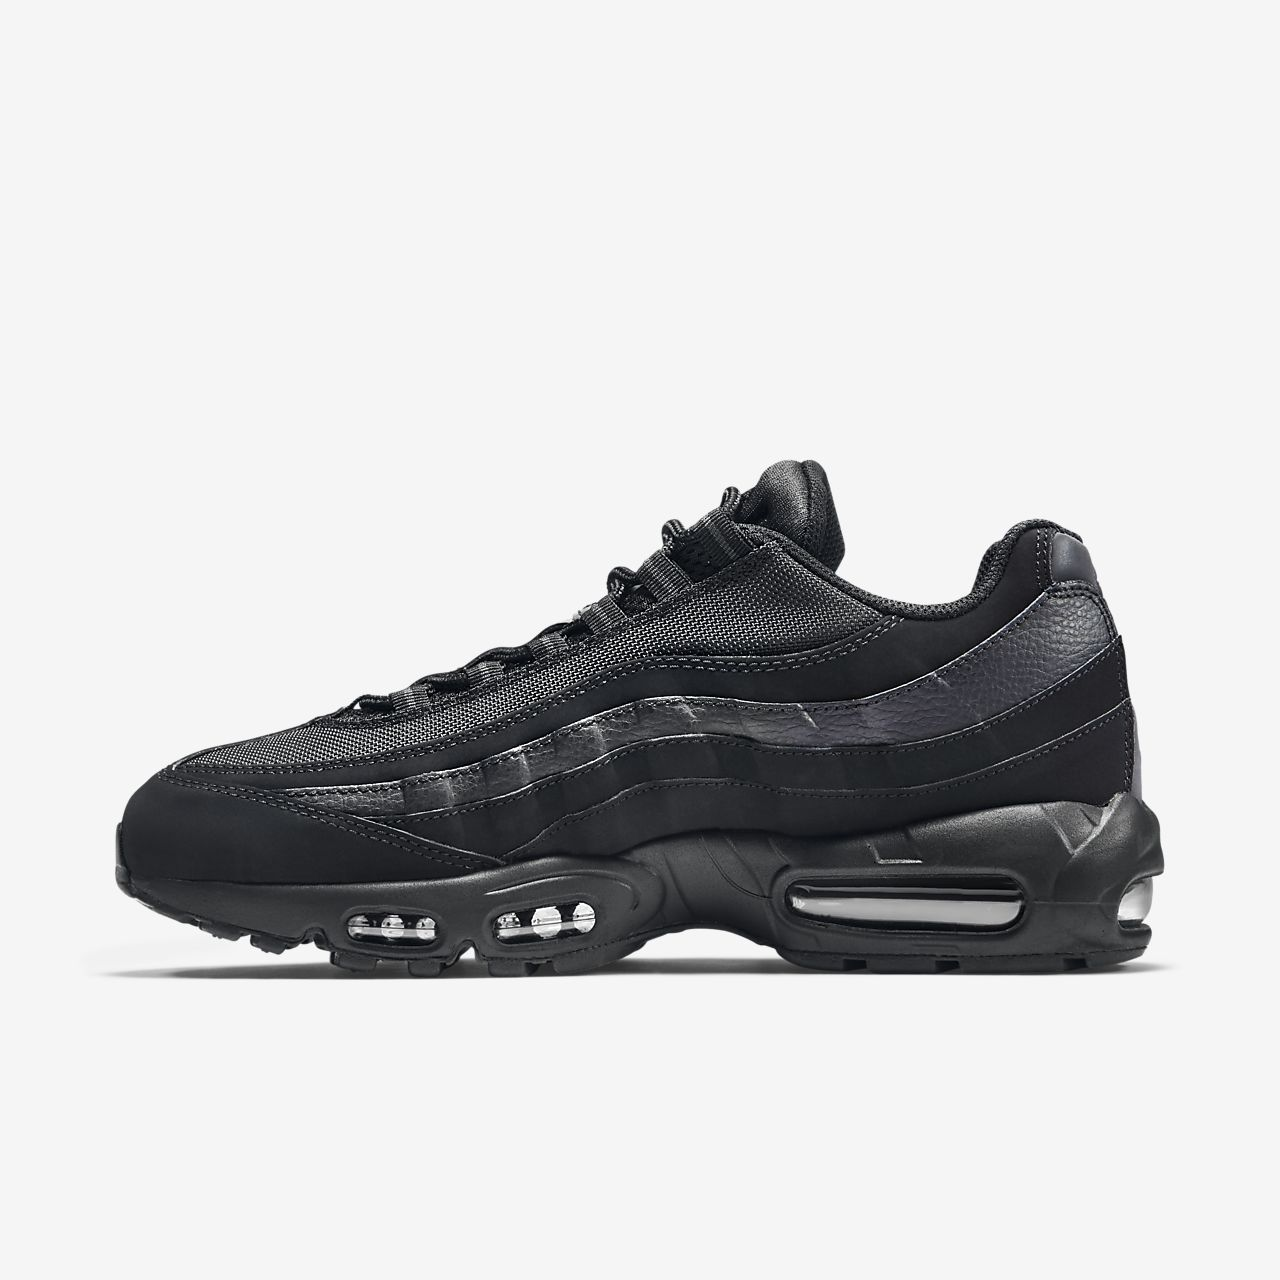 los angeles ba449 43545 ... Nike Air Max 95 Men s Shoe